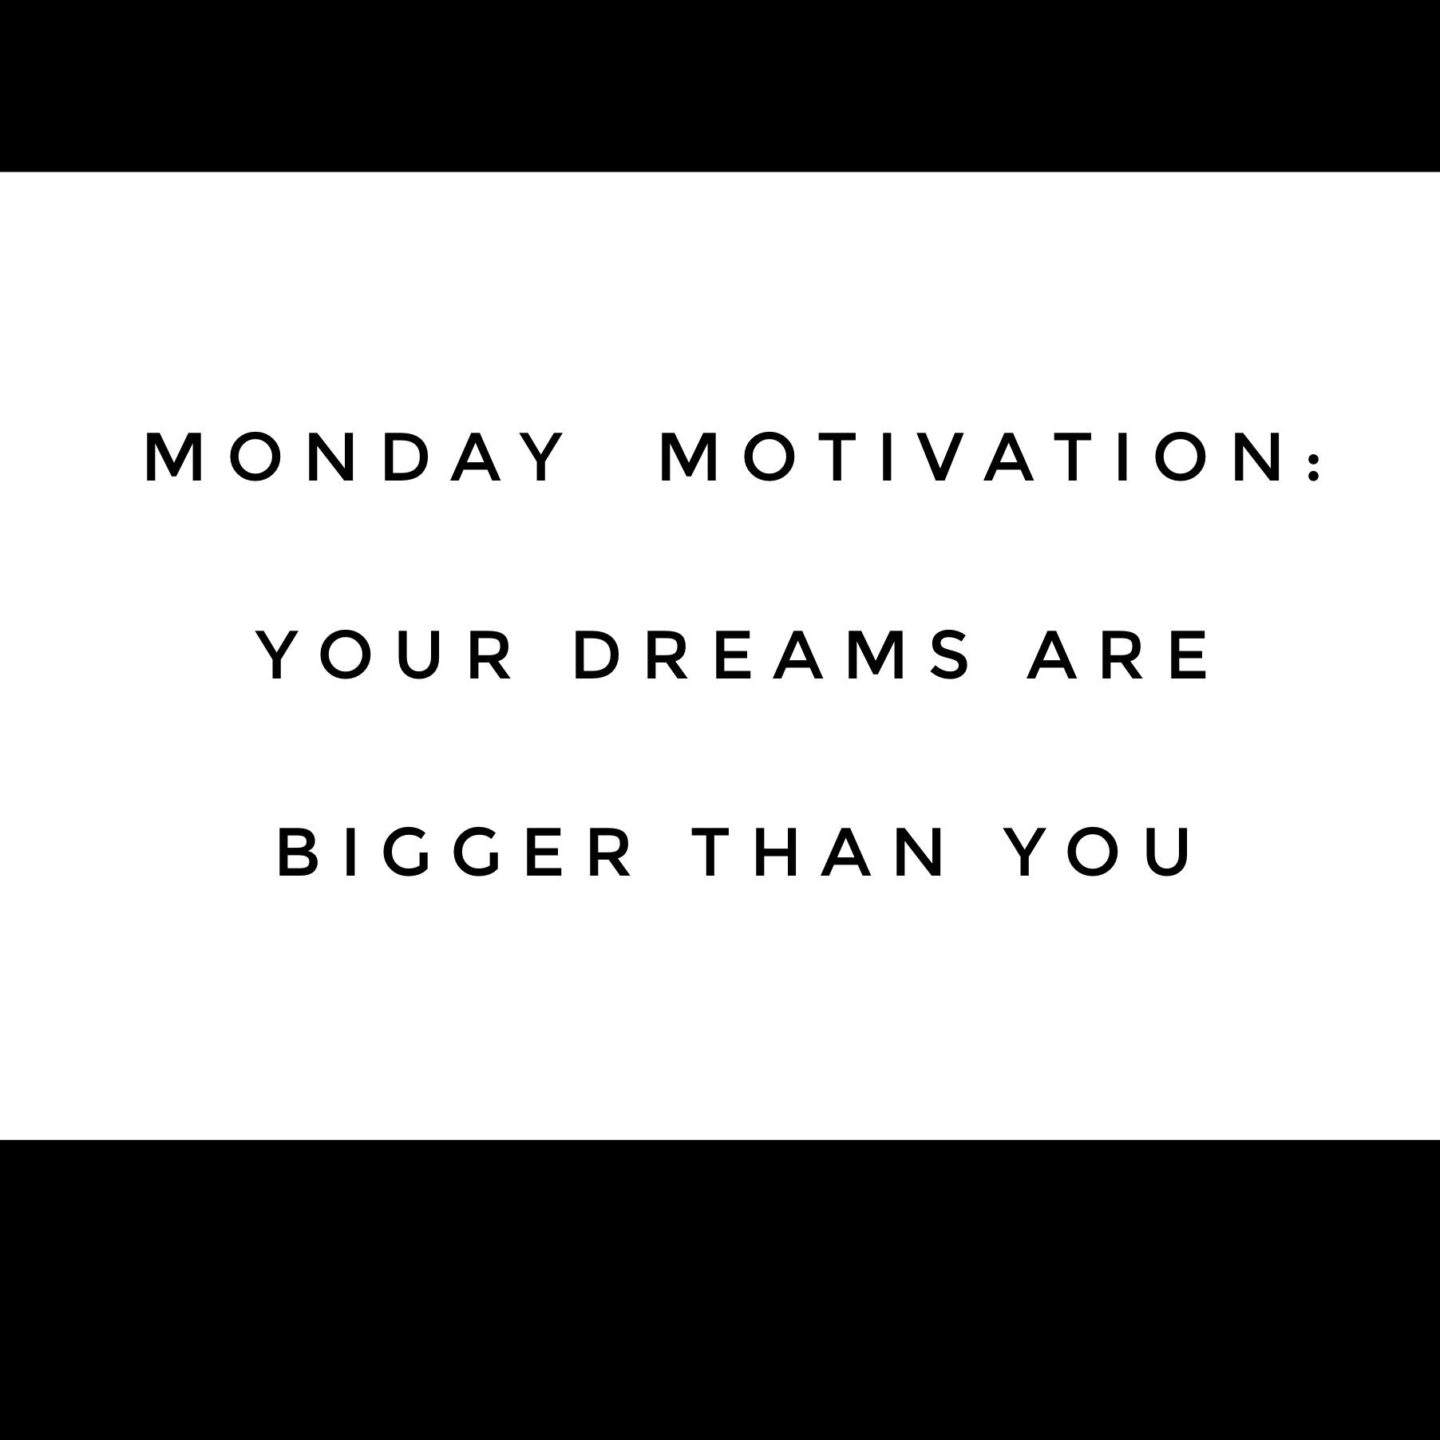 Motivation Monday: Your Dreams Are Beyond You